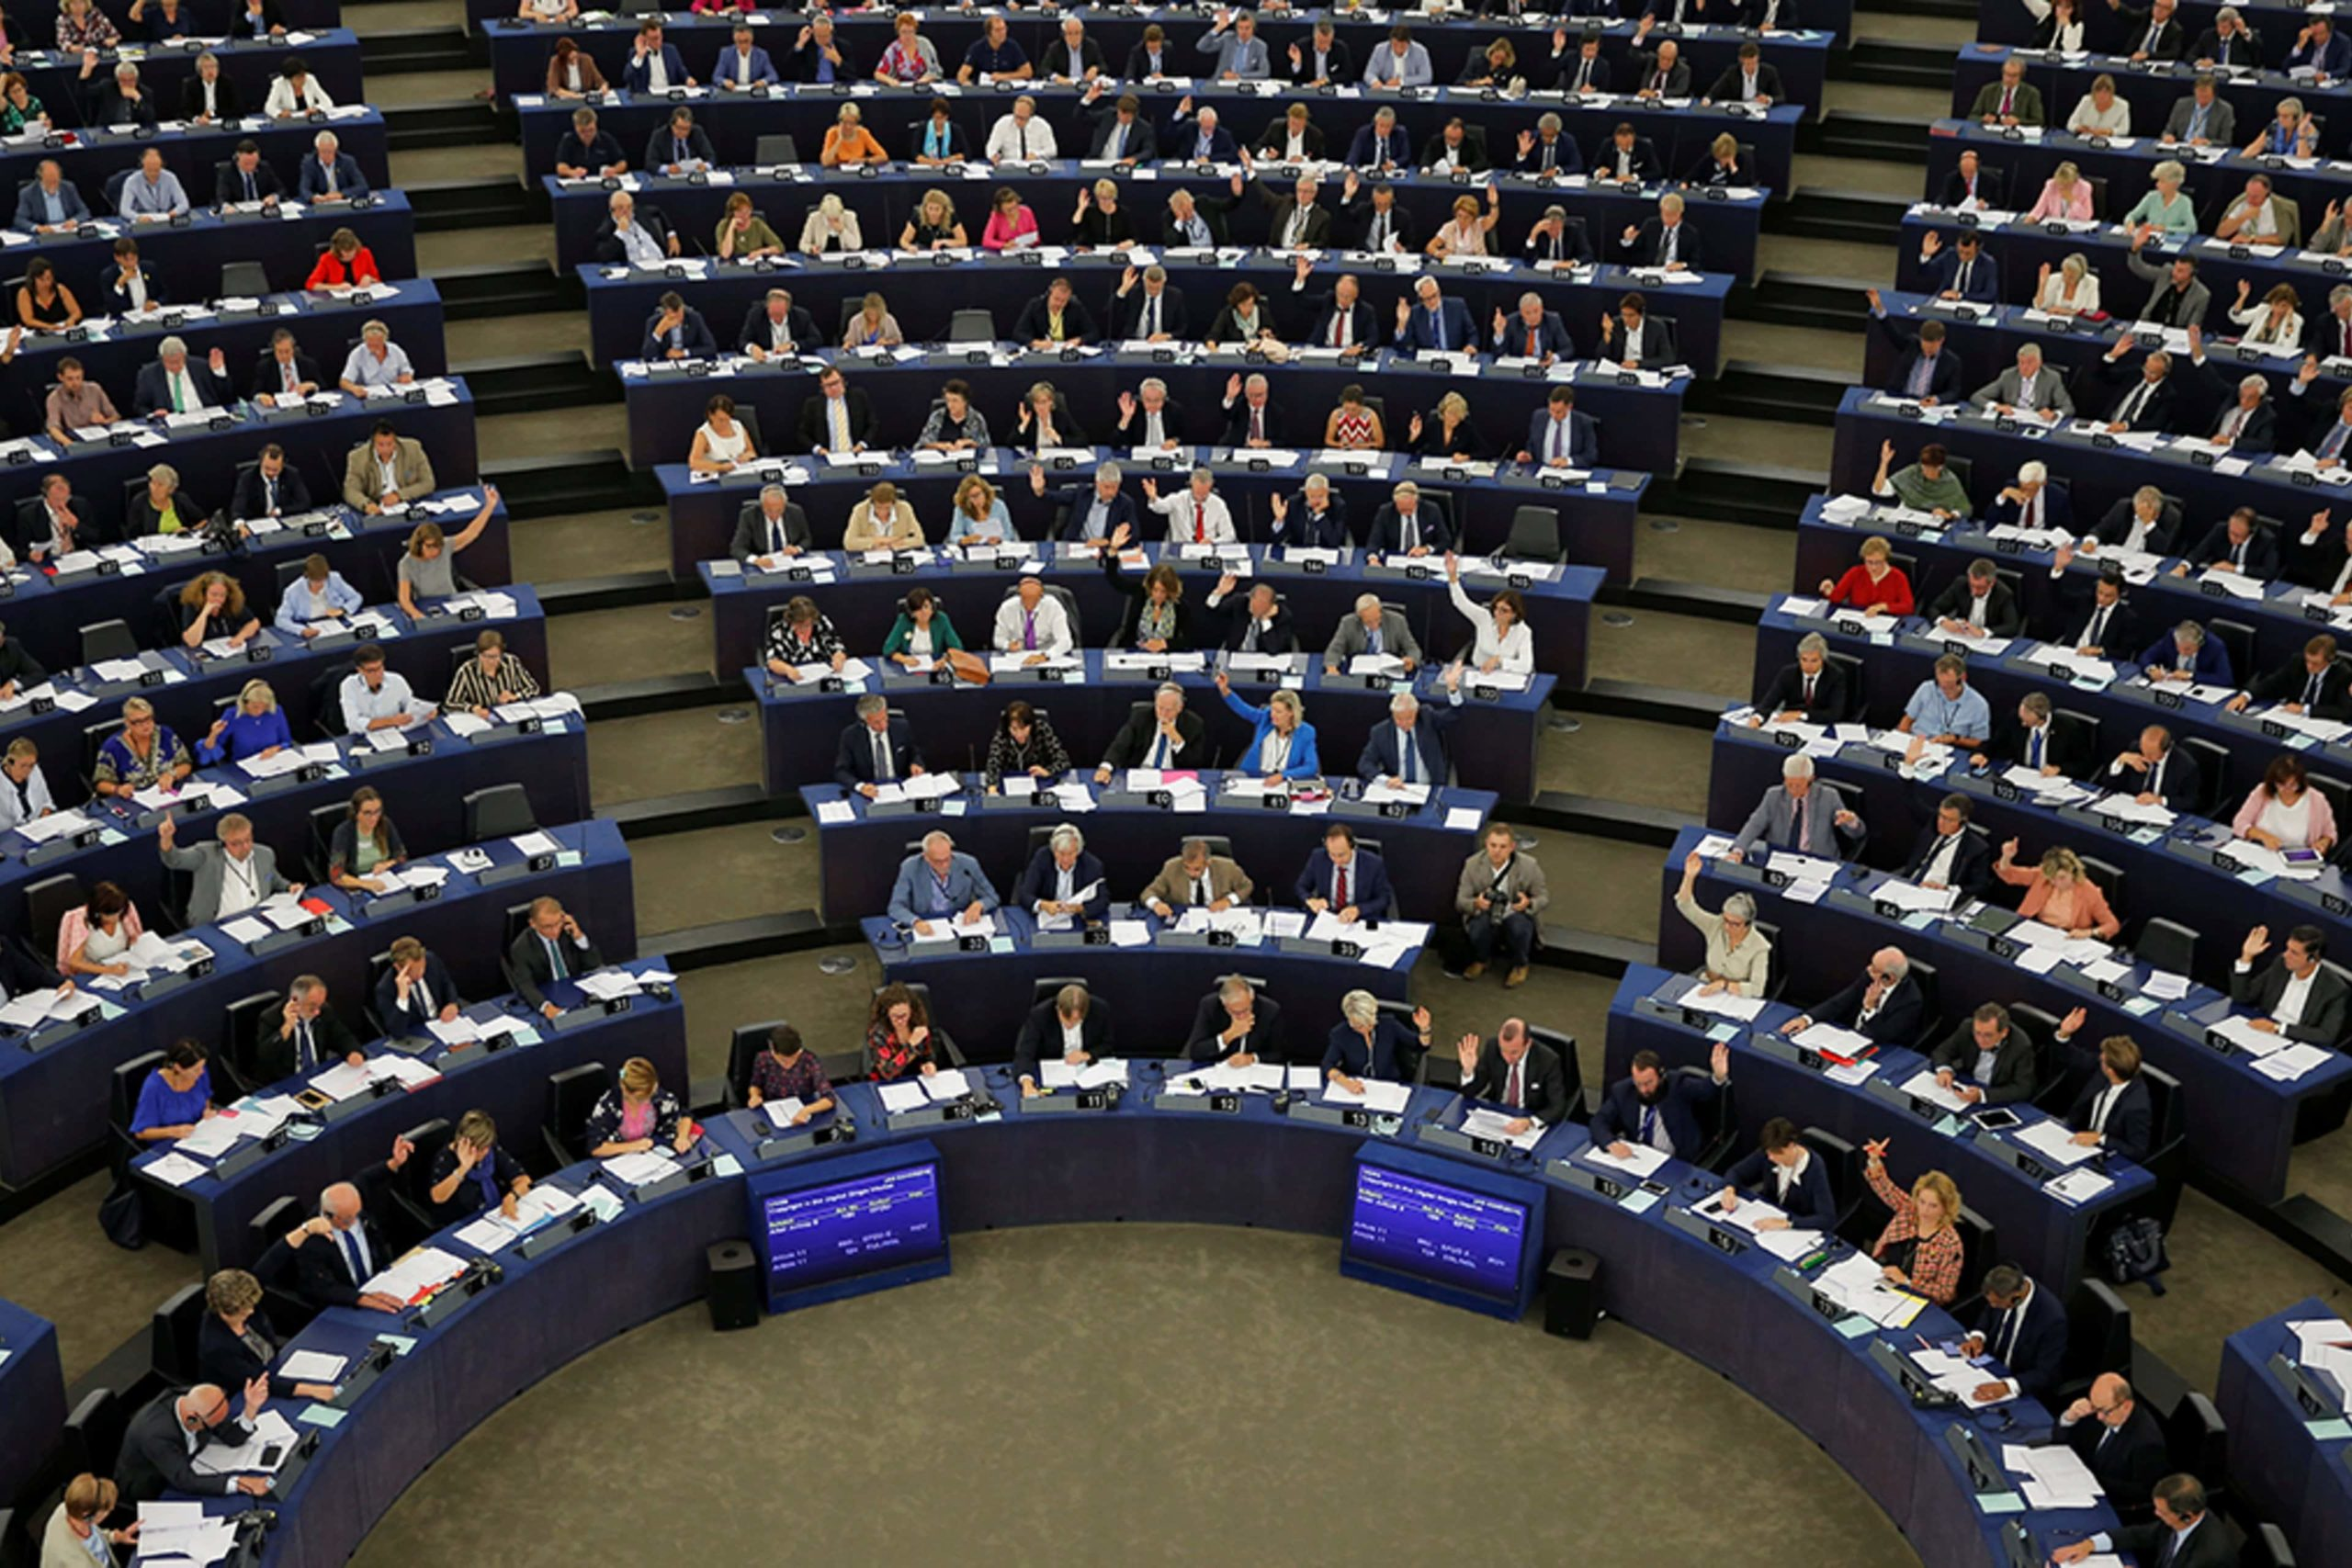 THE COMMISSION OF THE EUROPEAN COMMUNITIES,